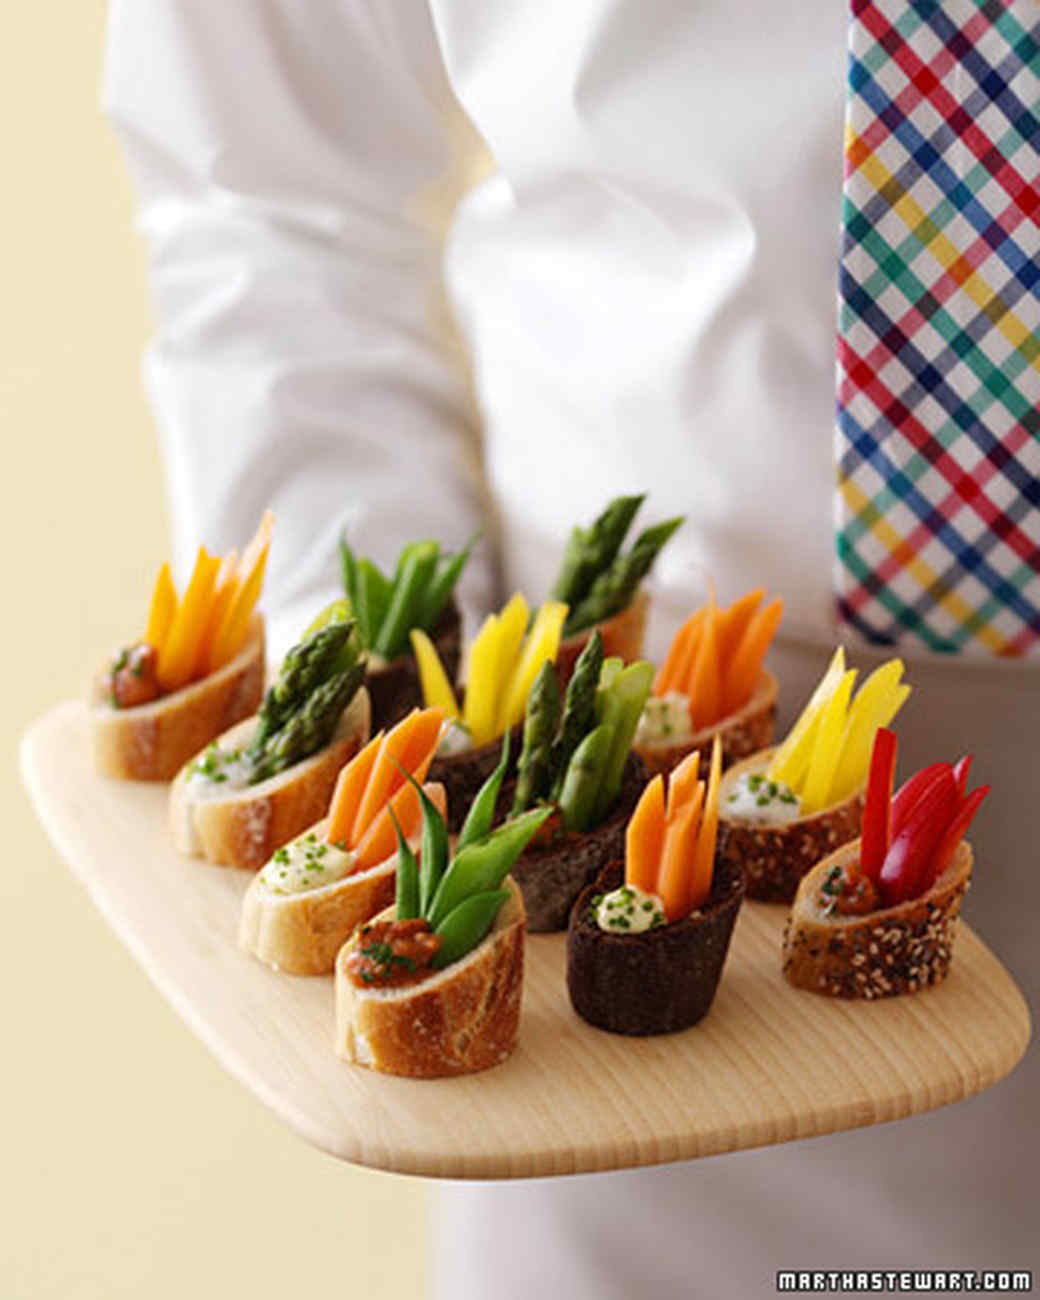 New Ways To Serve Crudite: It's A Farmers' Market After